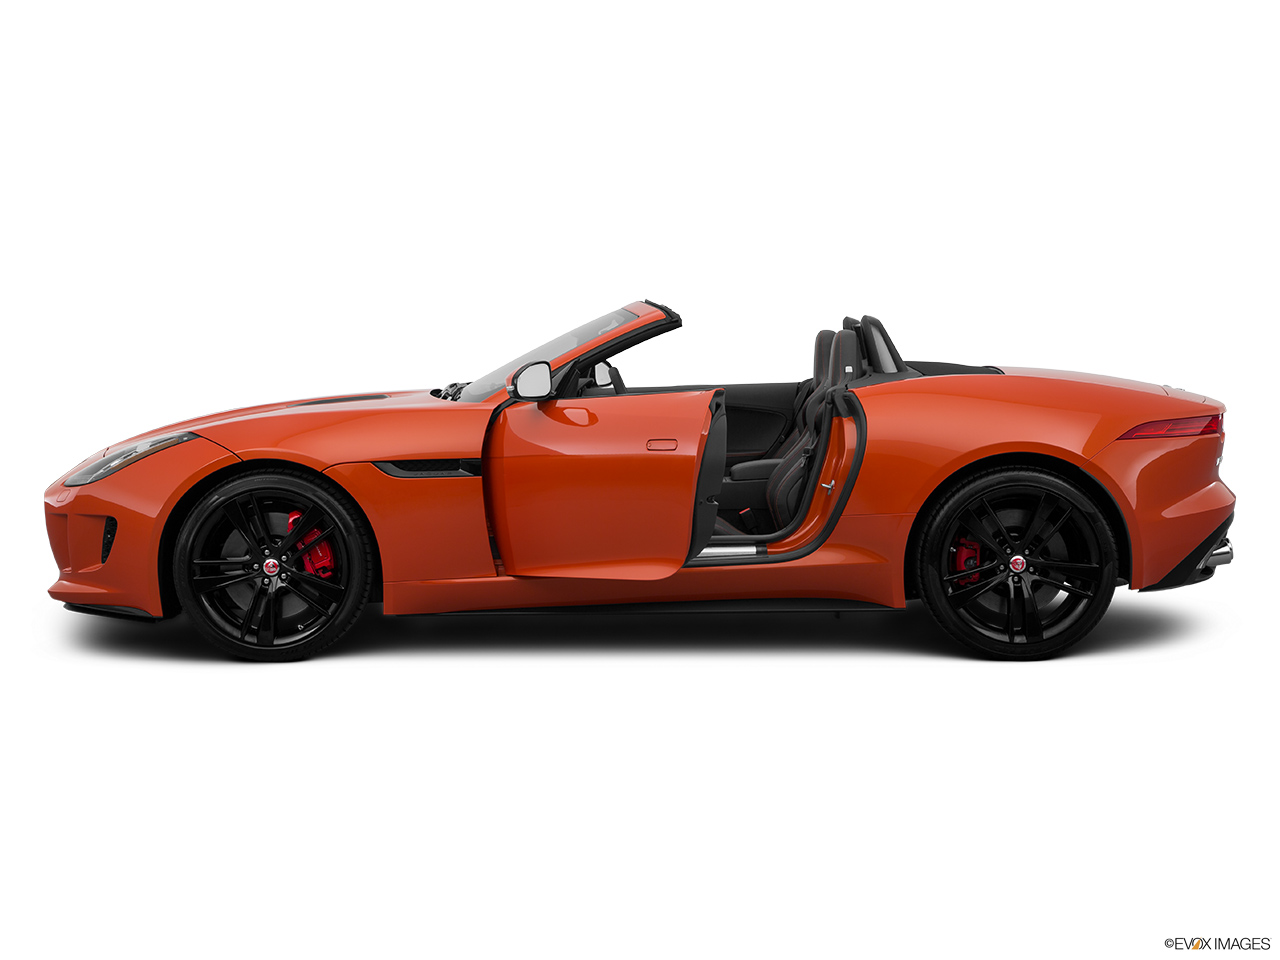 2015 Jaguar F-Type Convertible V8 S Driver's side profile with drivers side door open.